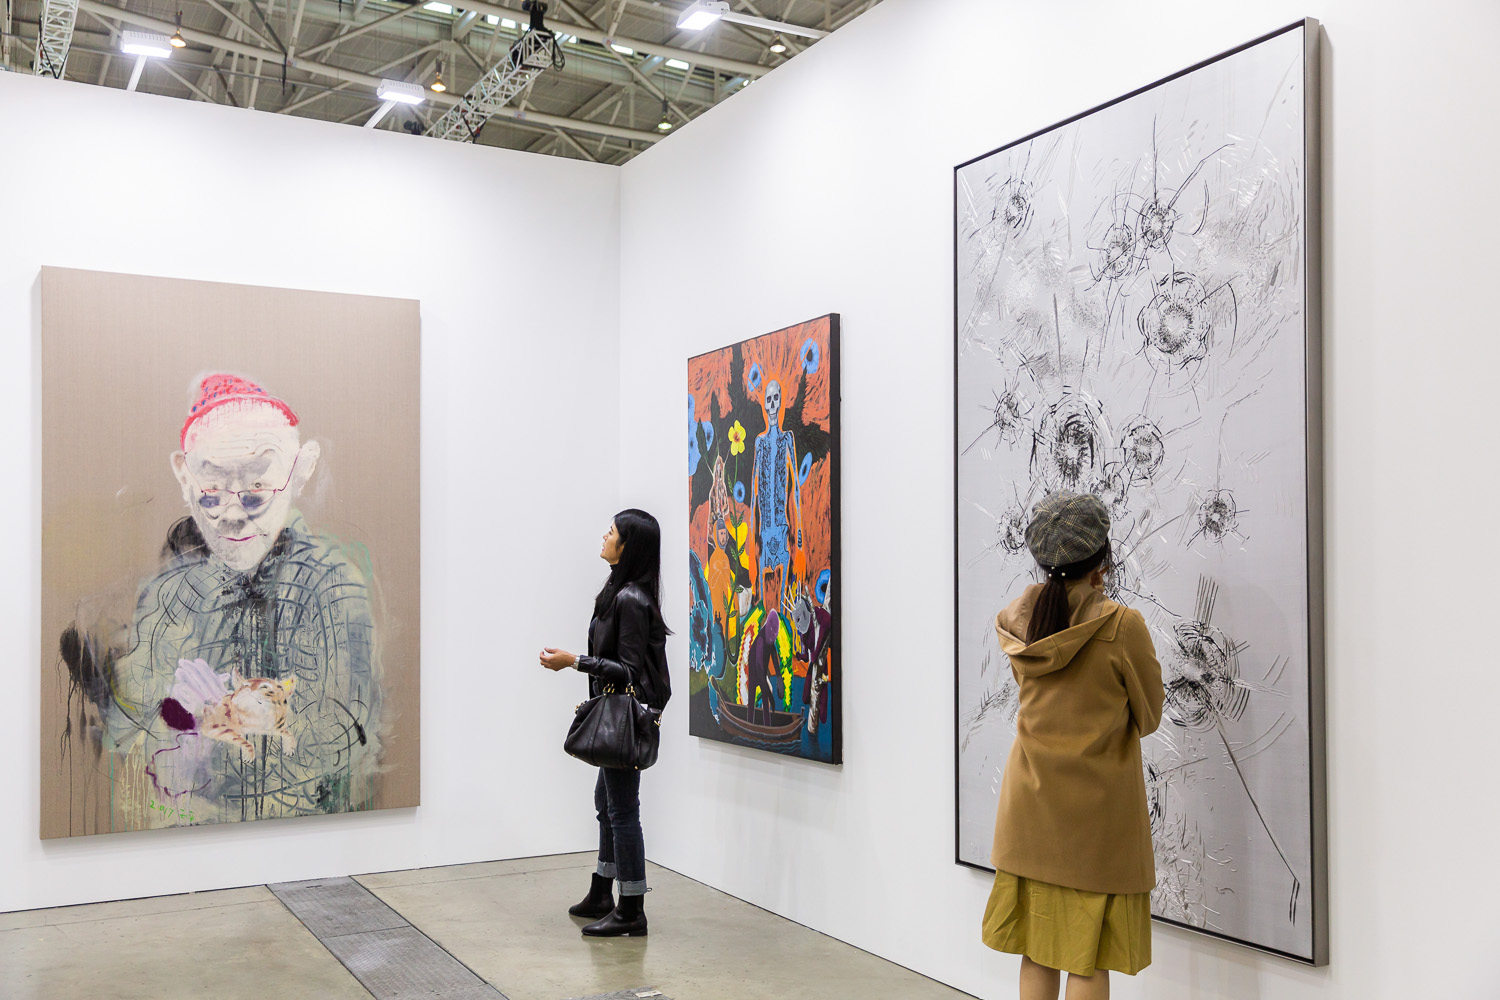 Installation view of Tang Contemporary's booth. Image courtesy of Taipei Dangdai.